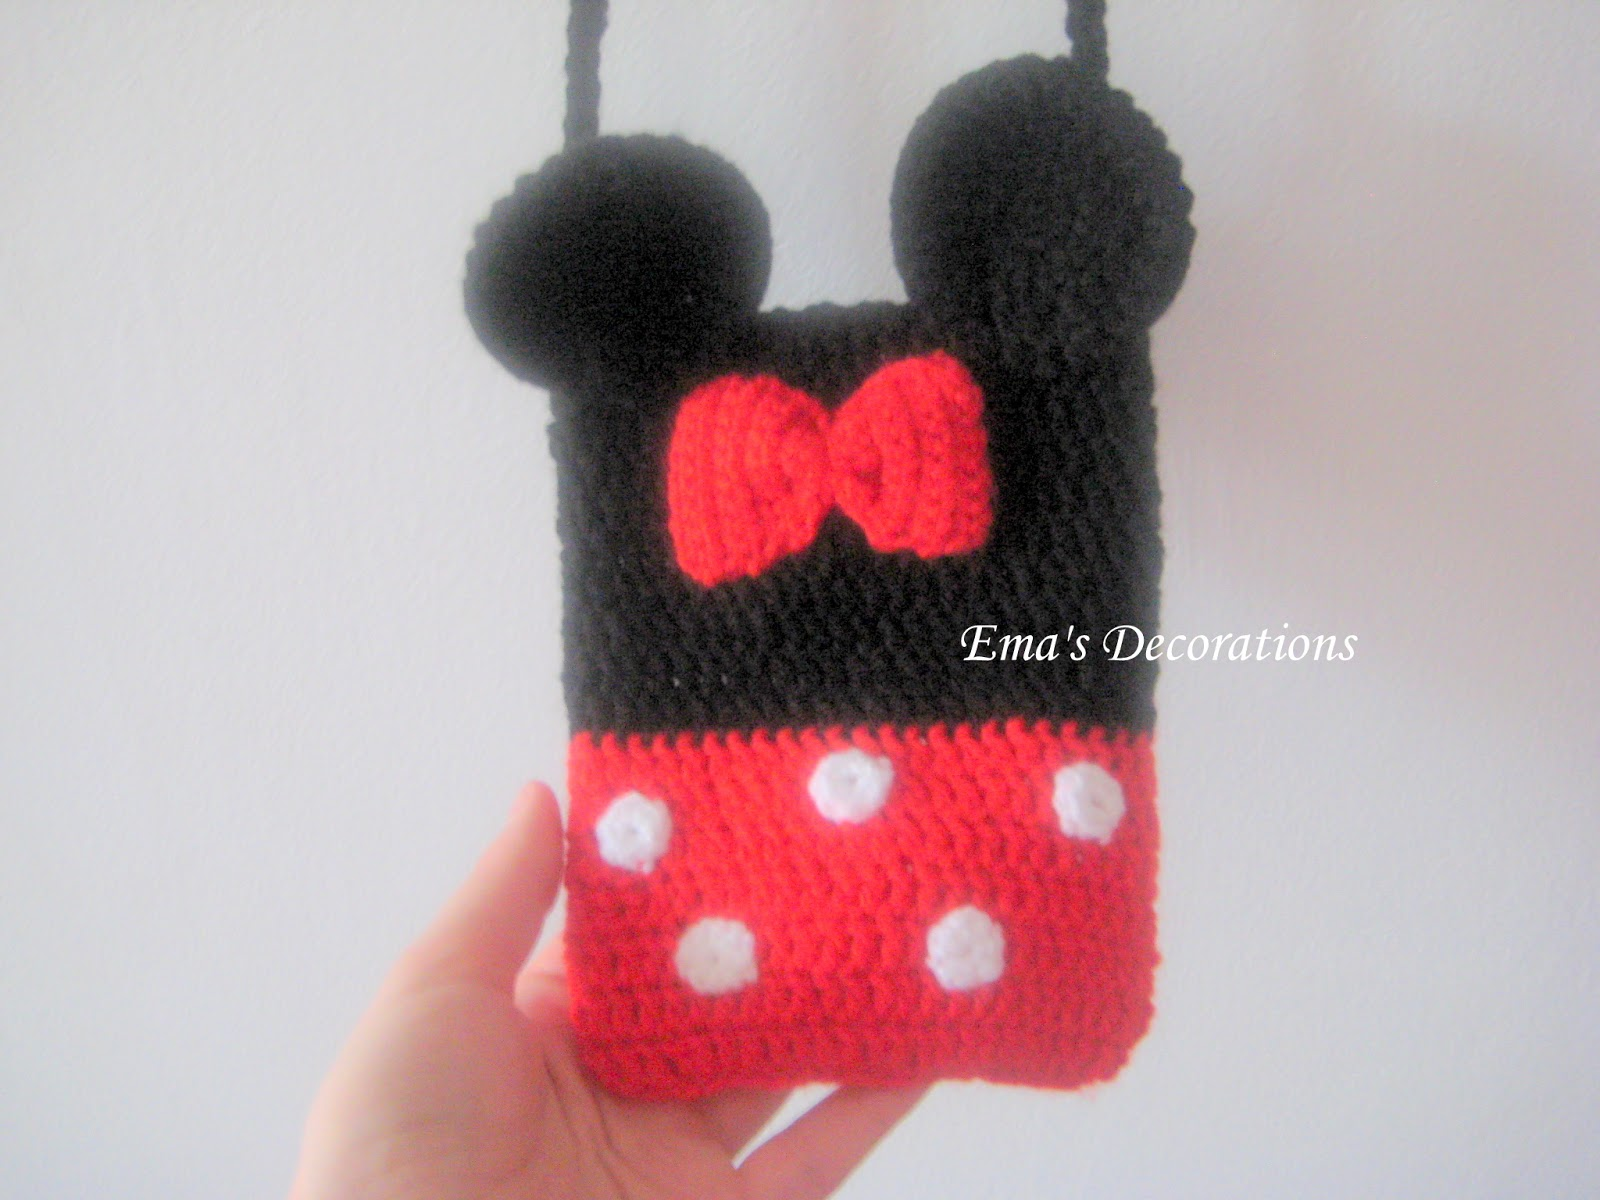 Ema decorations minnie mouse crochet bag minnie mouse crochet bag bankloansurffo Choice Image